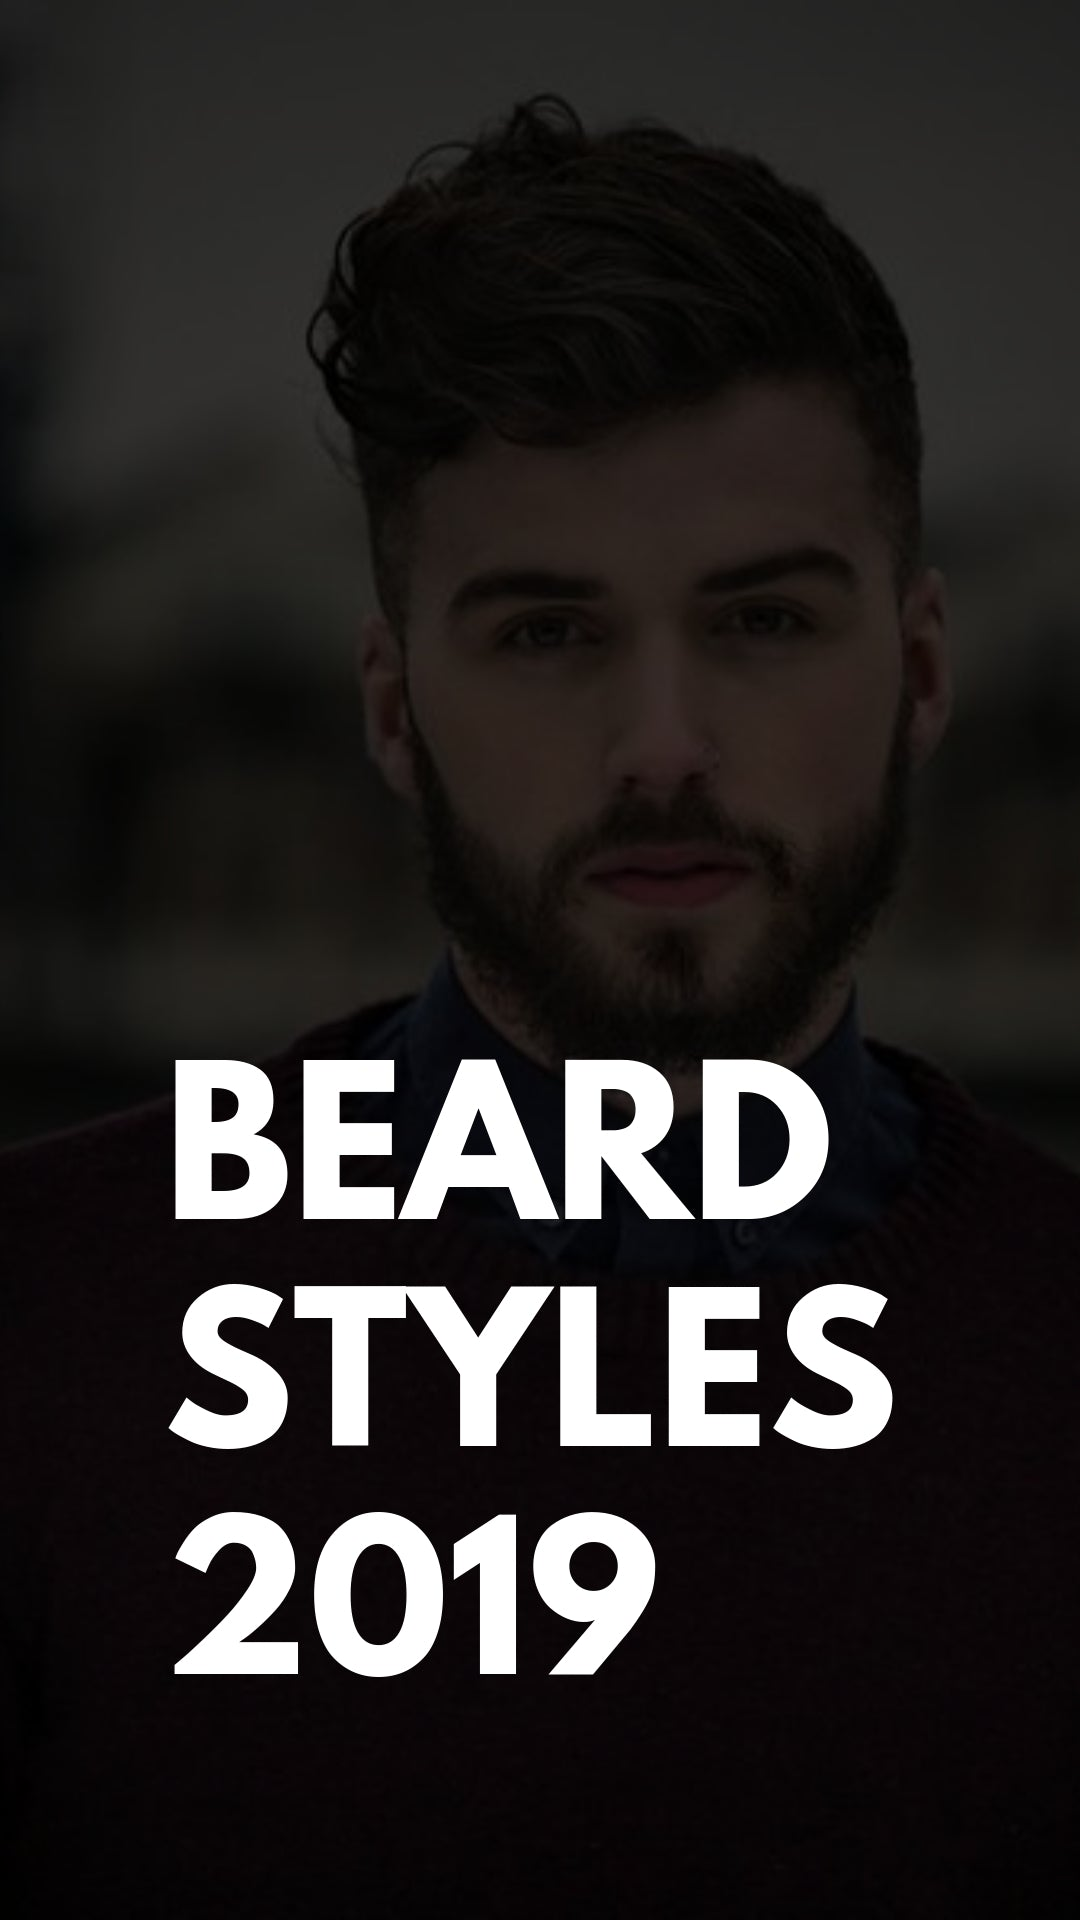 16 Beard Styles You Can Try In 2019